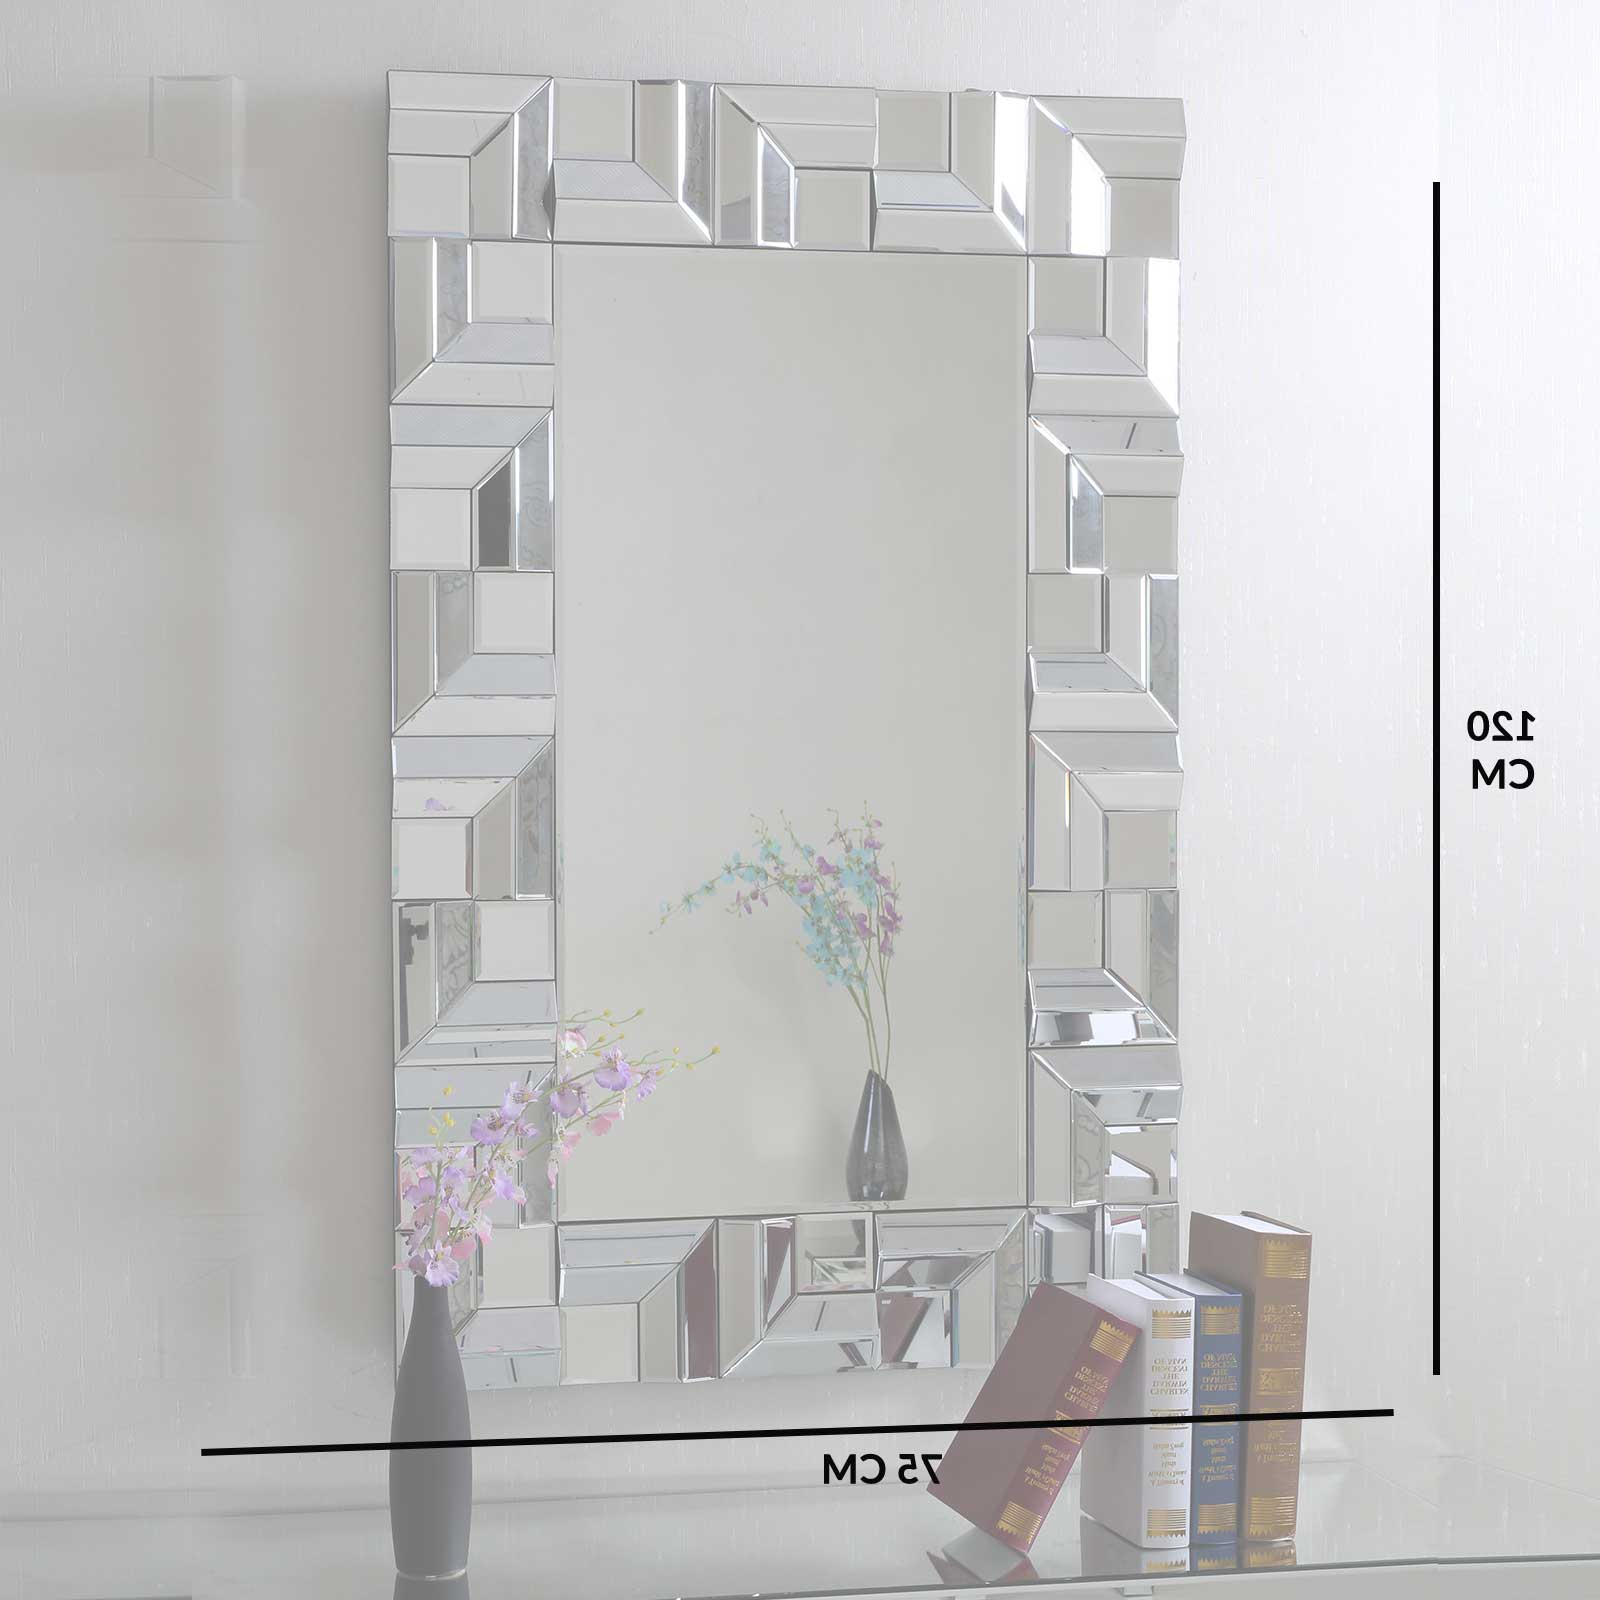 Brizzio Ps 013 Rectangular Multi Panel Decorative Wall Mirror Pertaining To Newest Multi Panel Wall Mirrors (View 3 of 20)